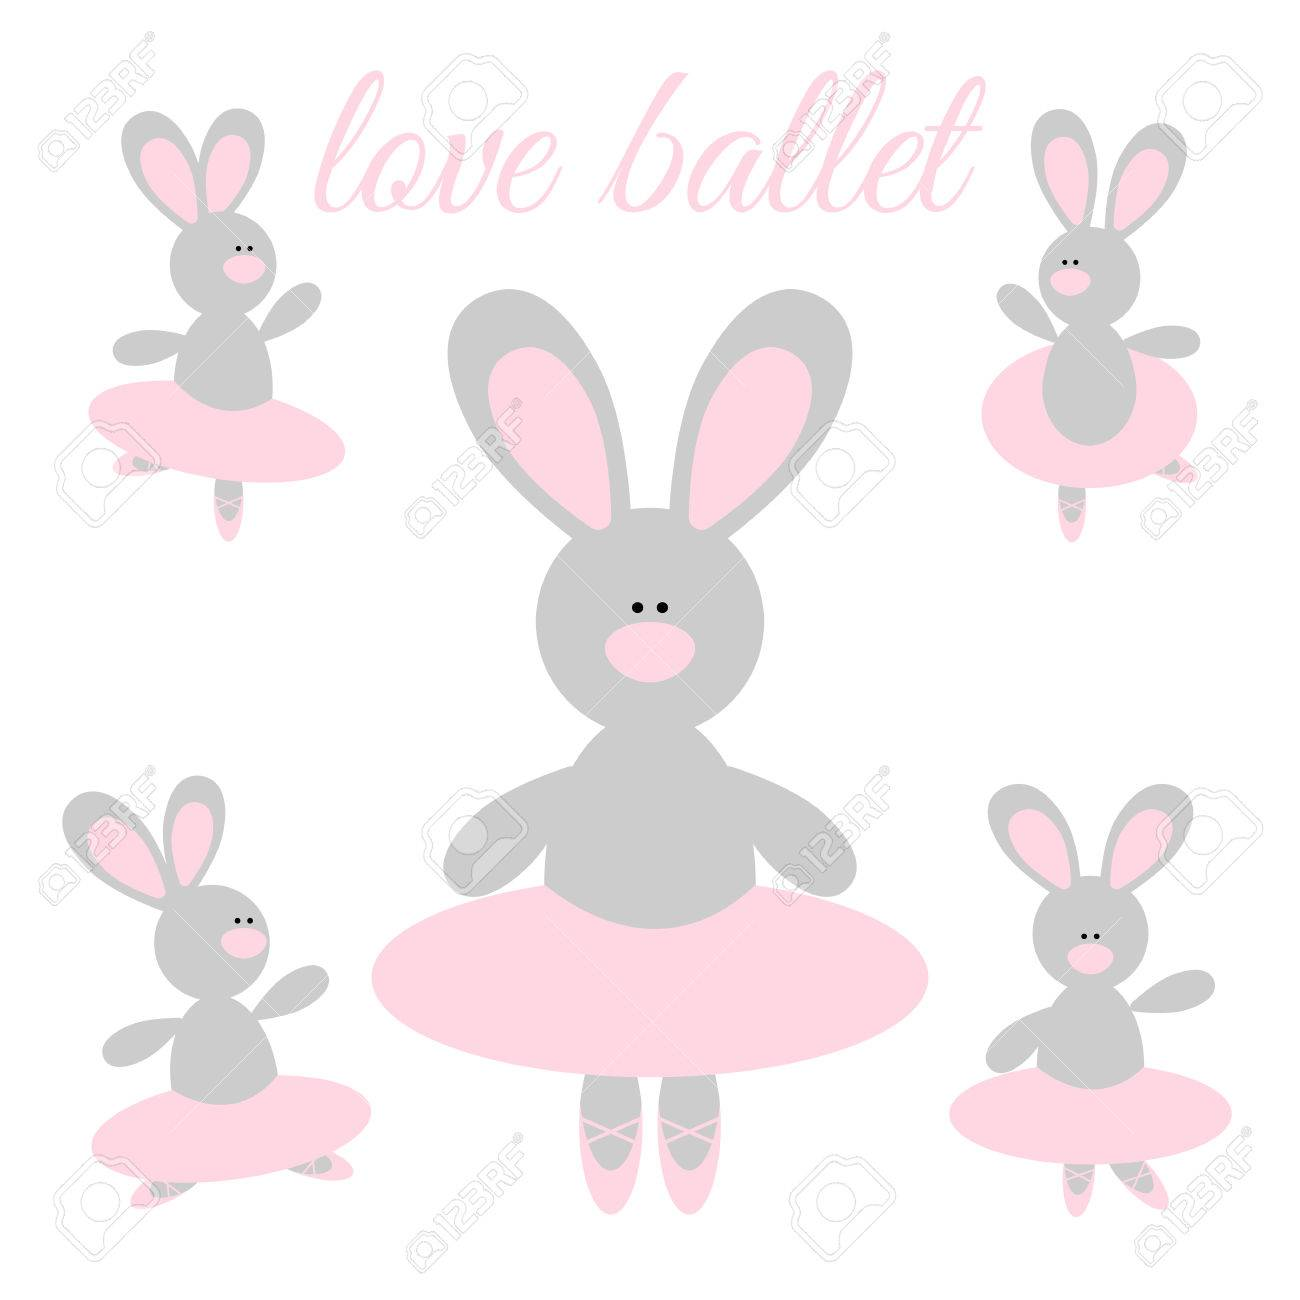 c846e8c8813f7 Cute cartoon rabbit ballerina in a pink tutu and pointes Stock Vector -  74528236